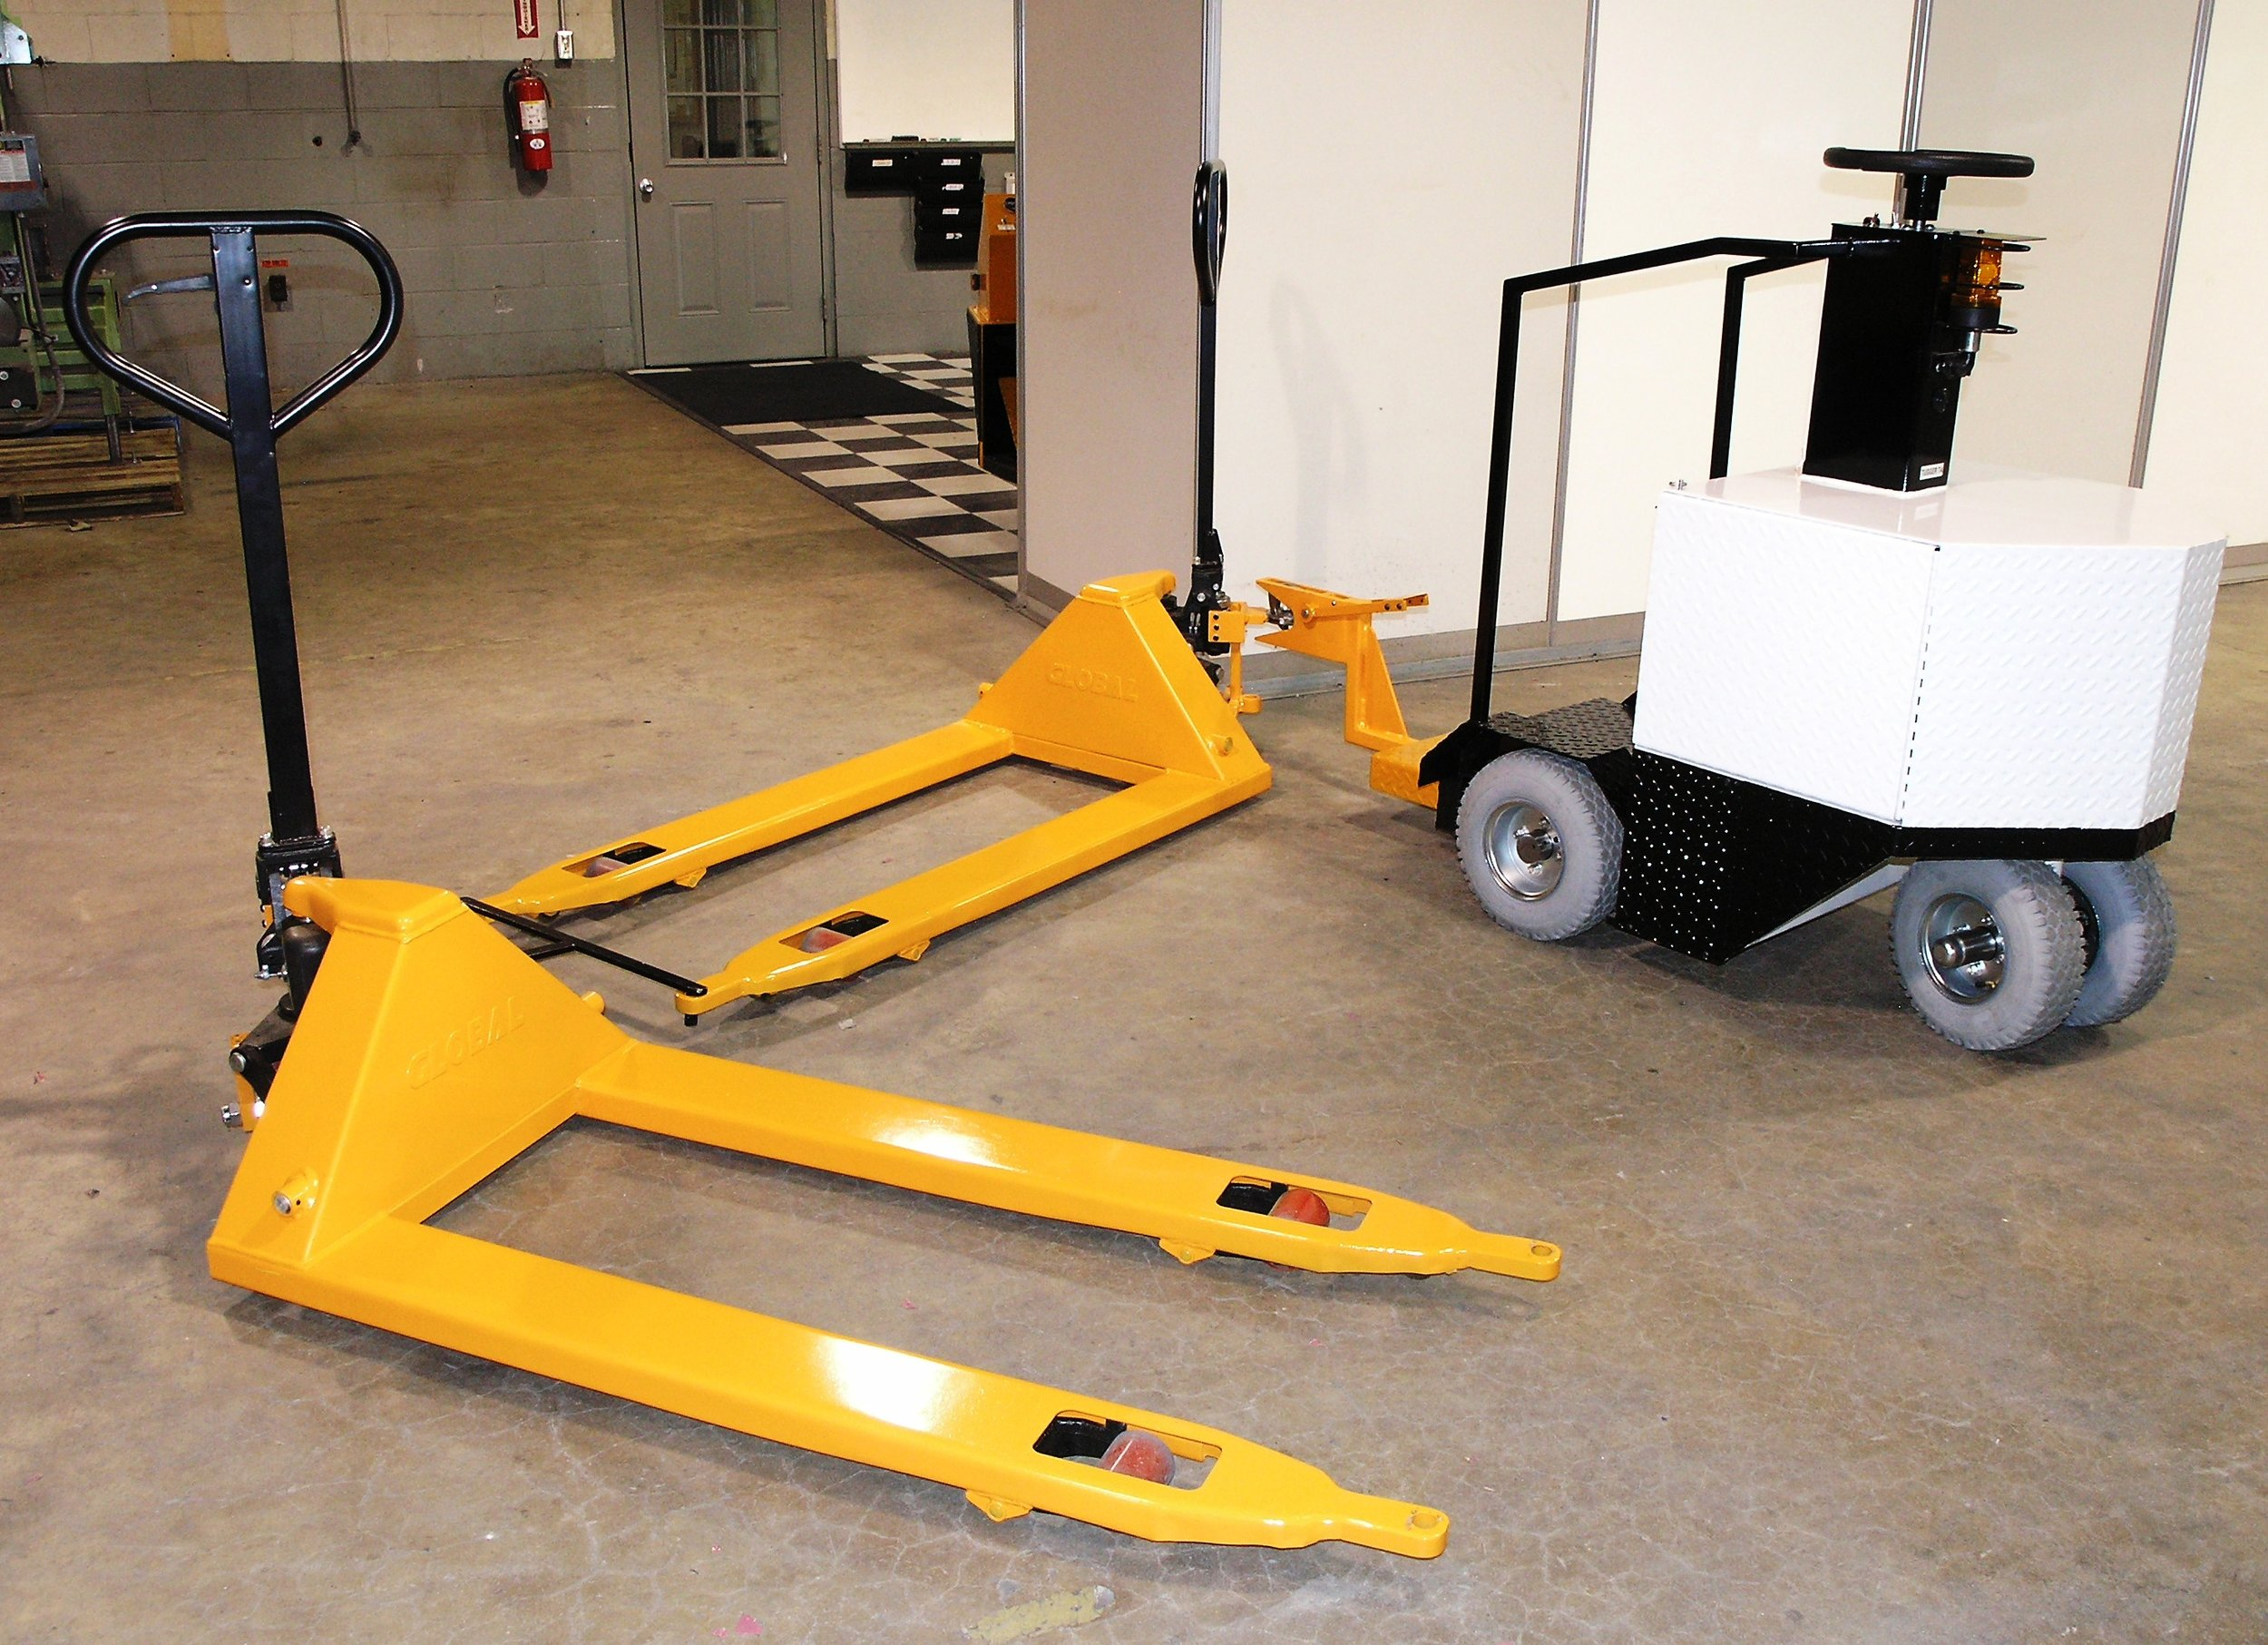 TCI Equipment complimenting EV Systems and Material Handling needs